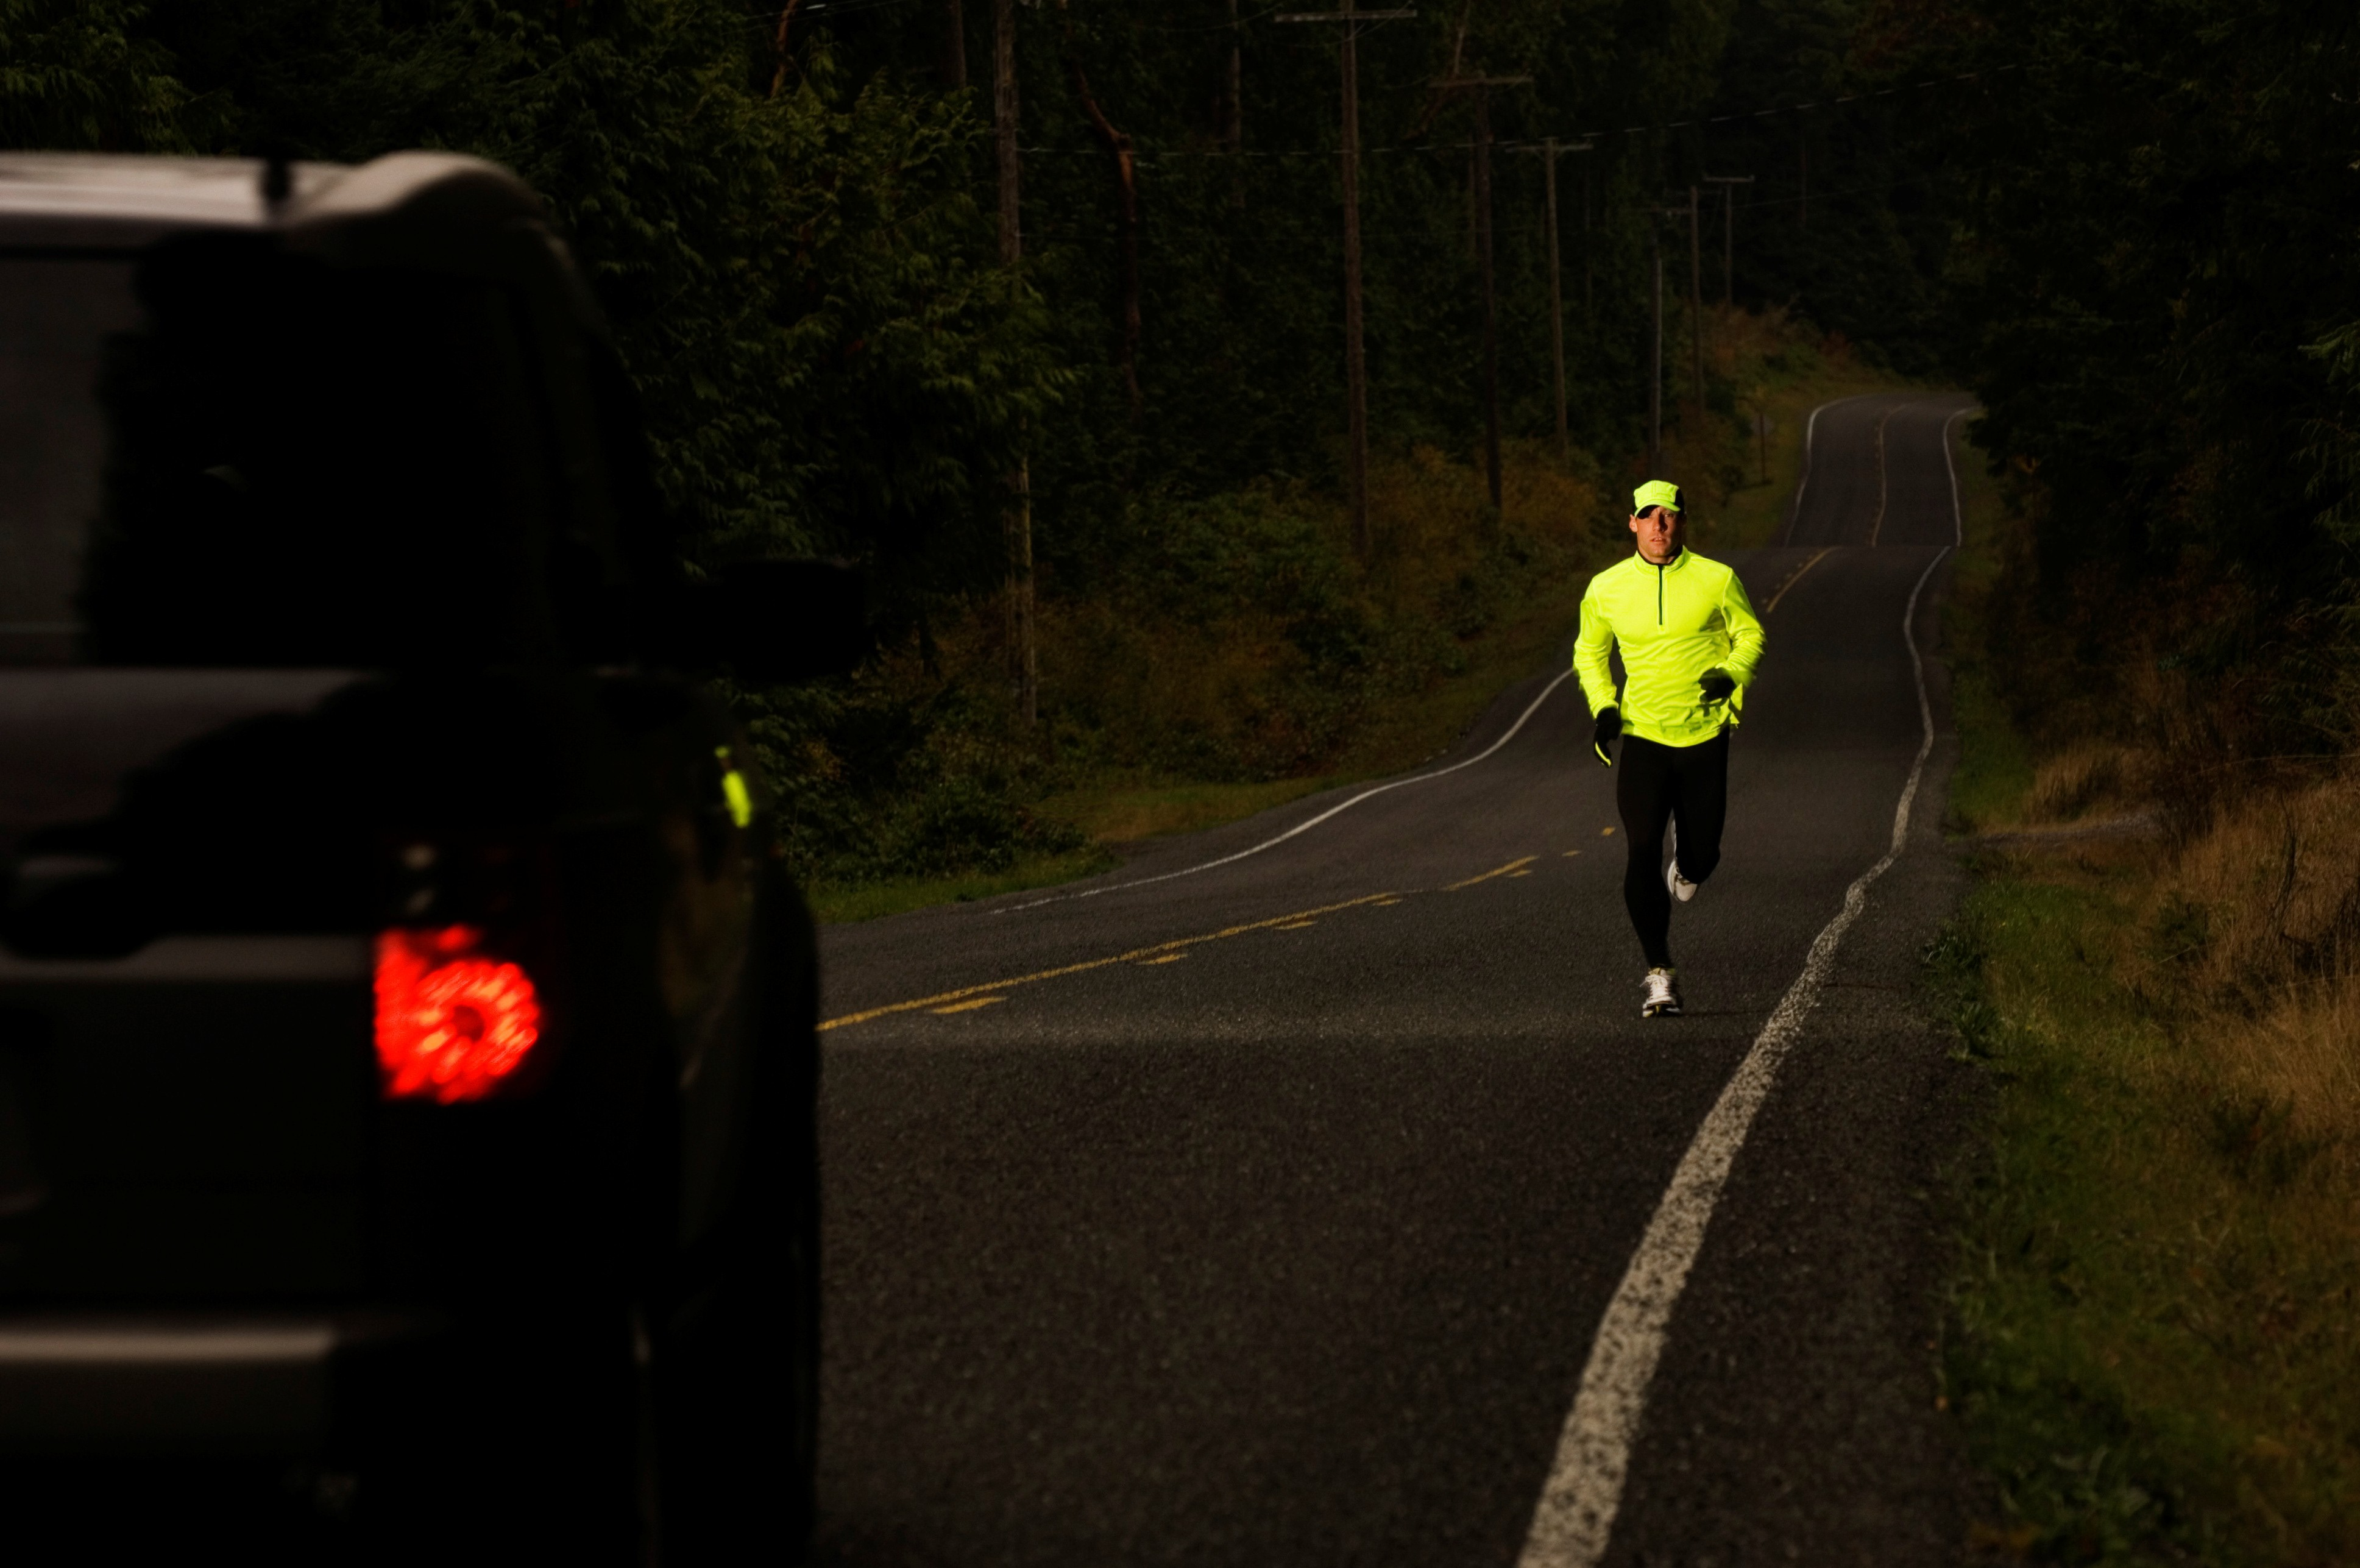 Man jogging on road, car approaching, dusk